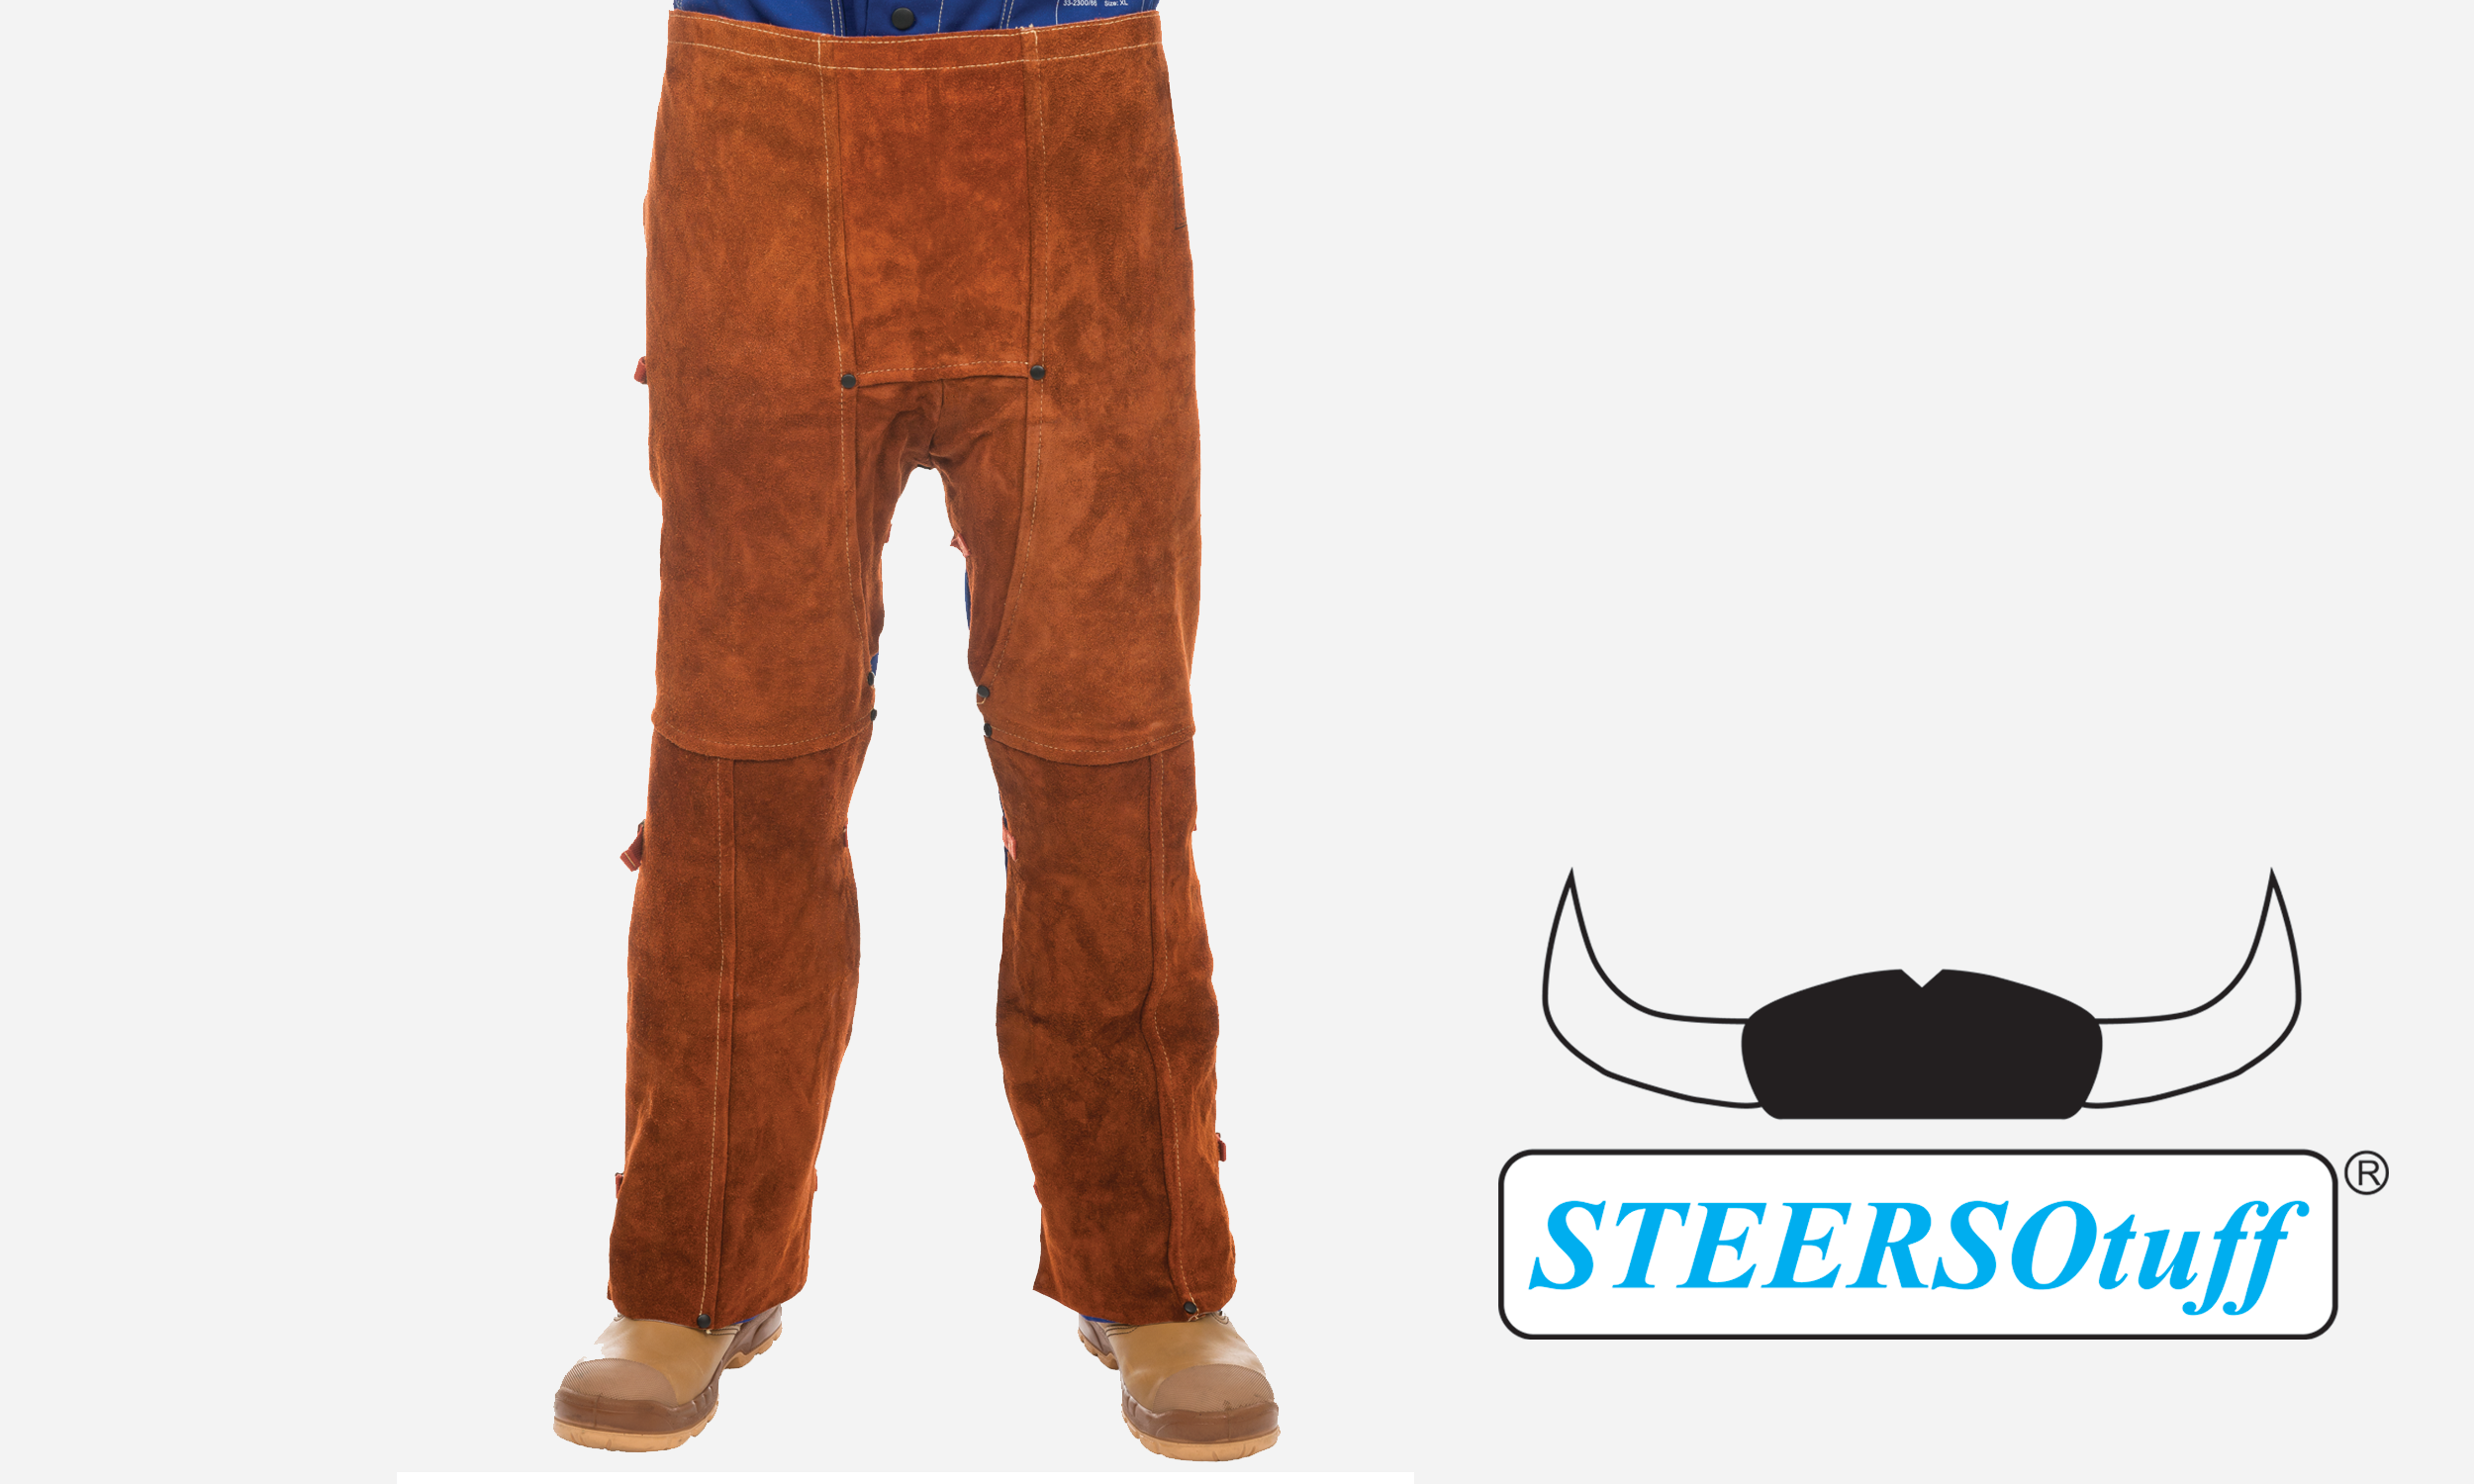 44-7440 Premium Leather Chaps.png